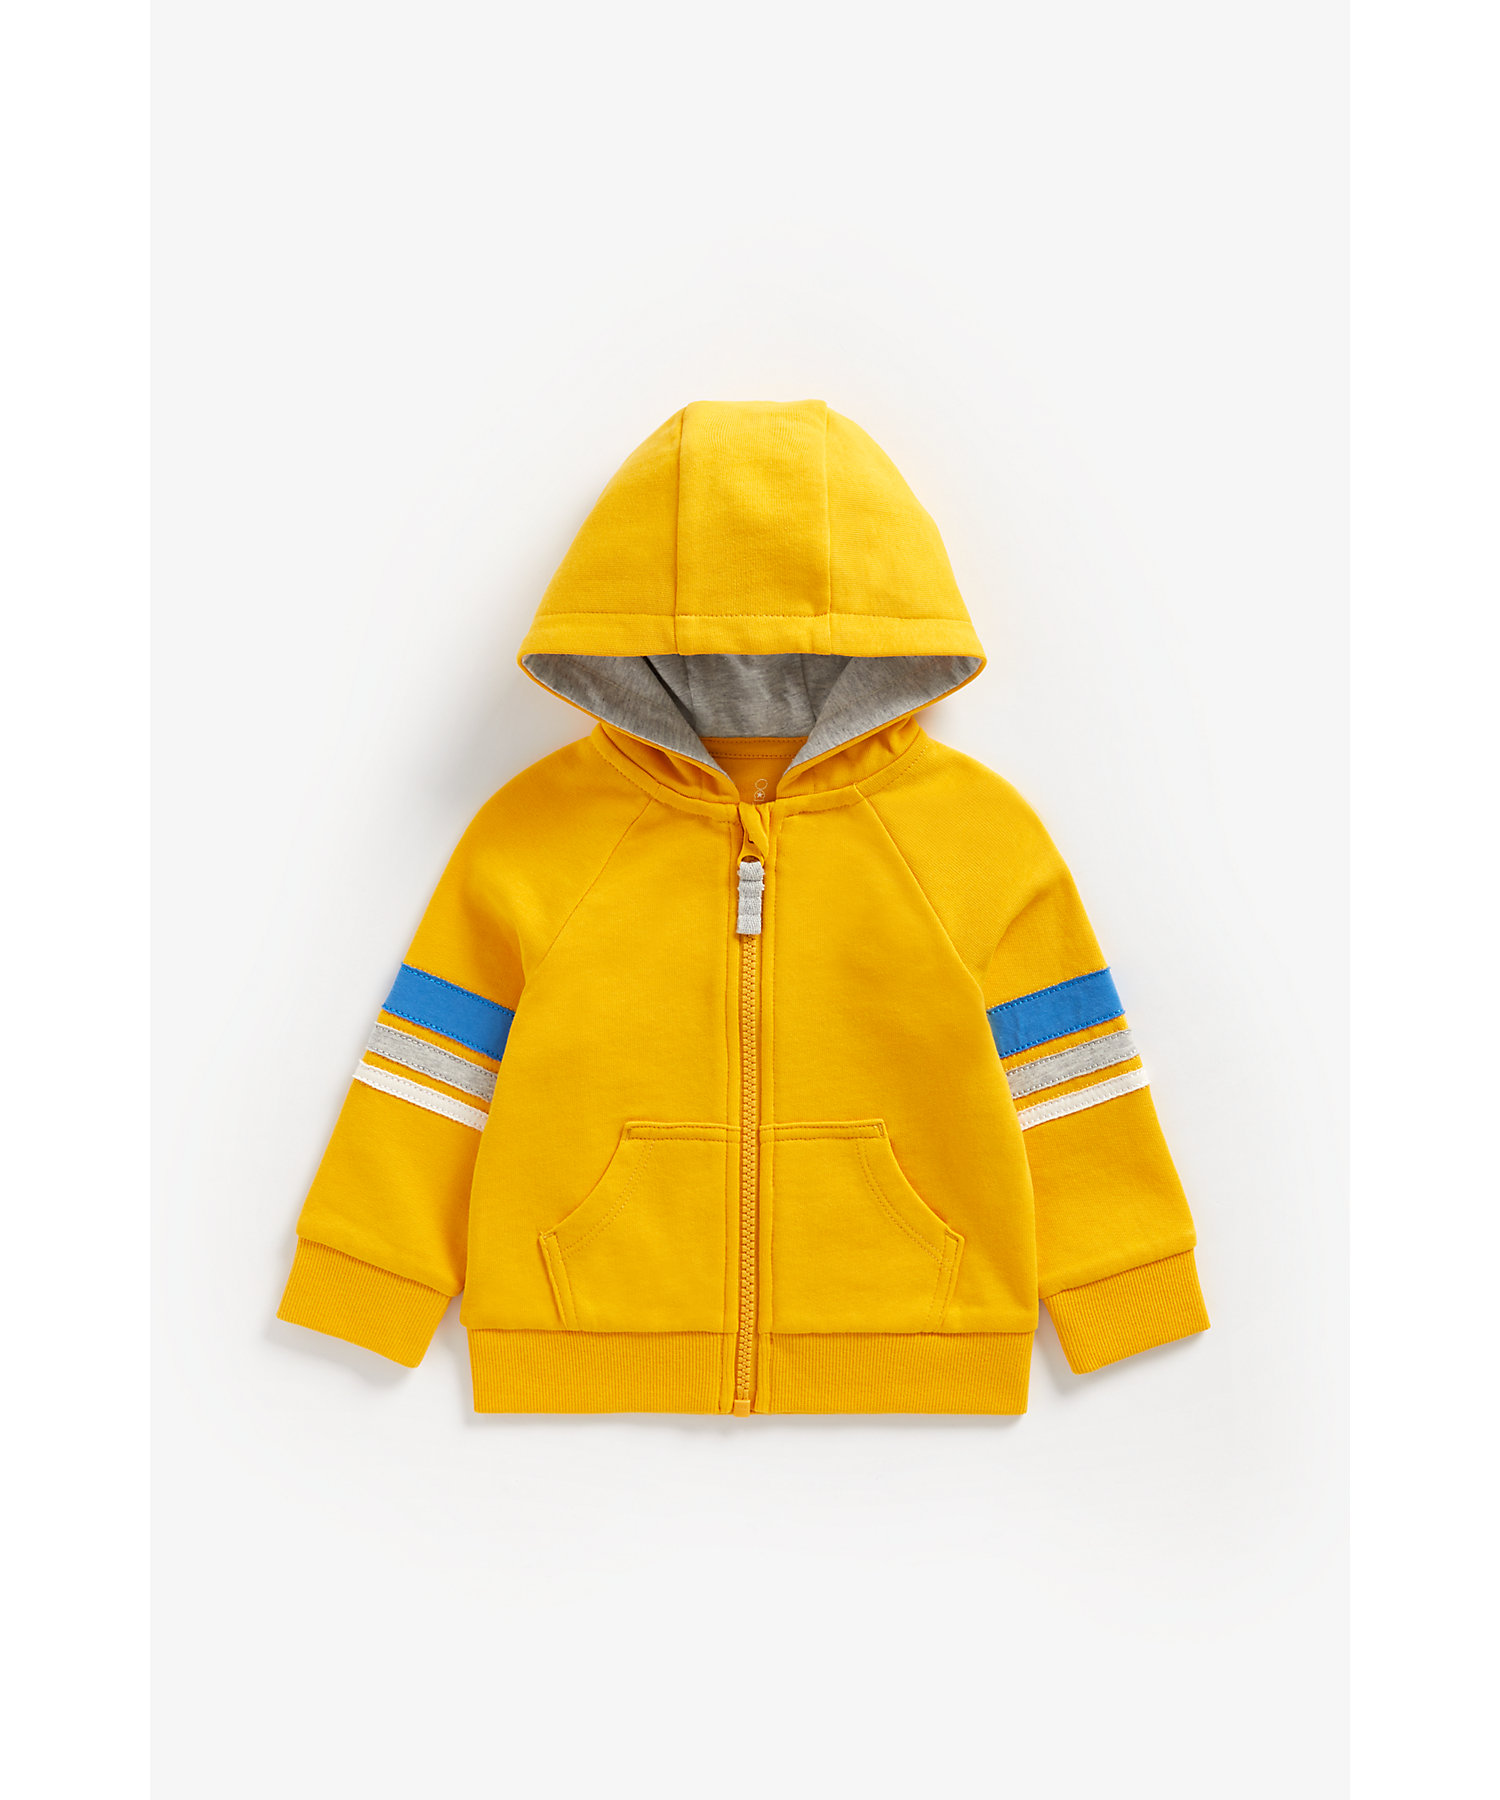 Mothercare   Boys Full Sleeves Hooded Sweatshirt Patch Detail - Yellow